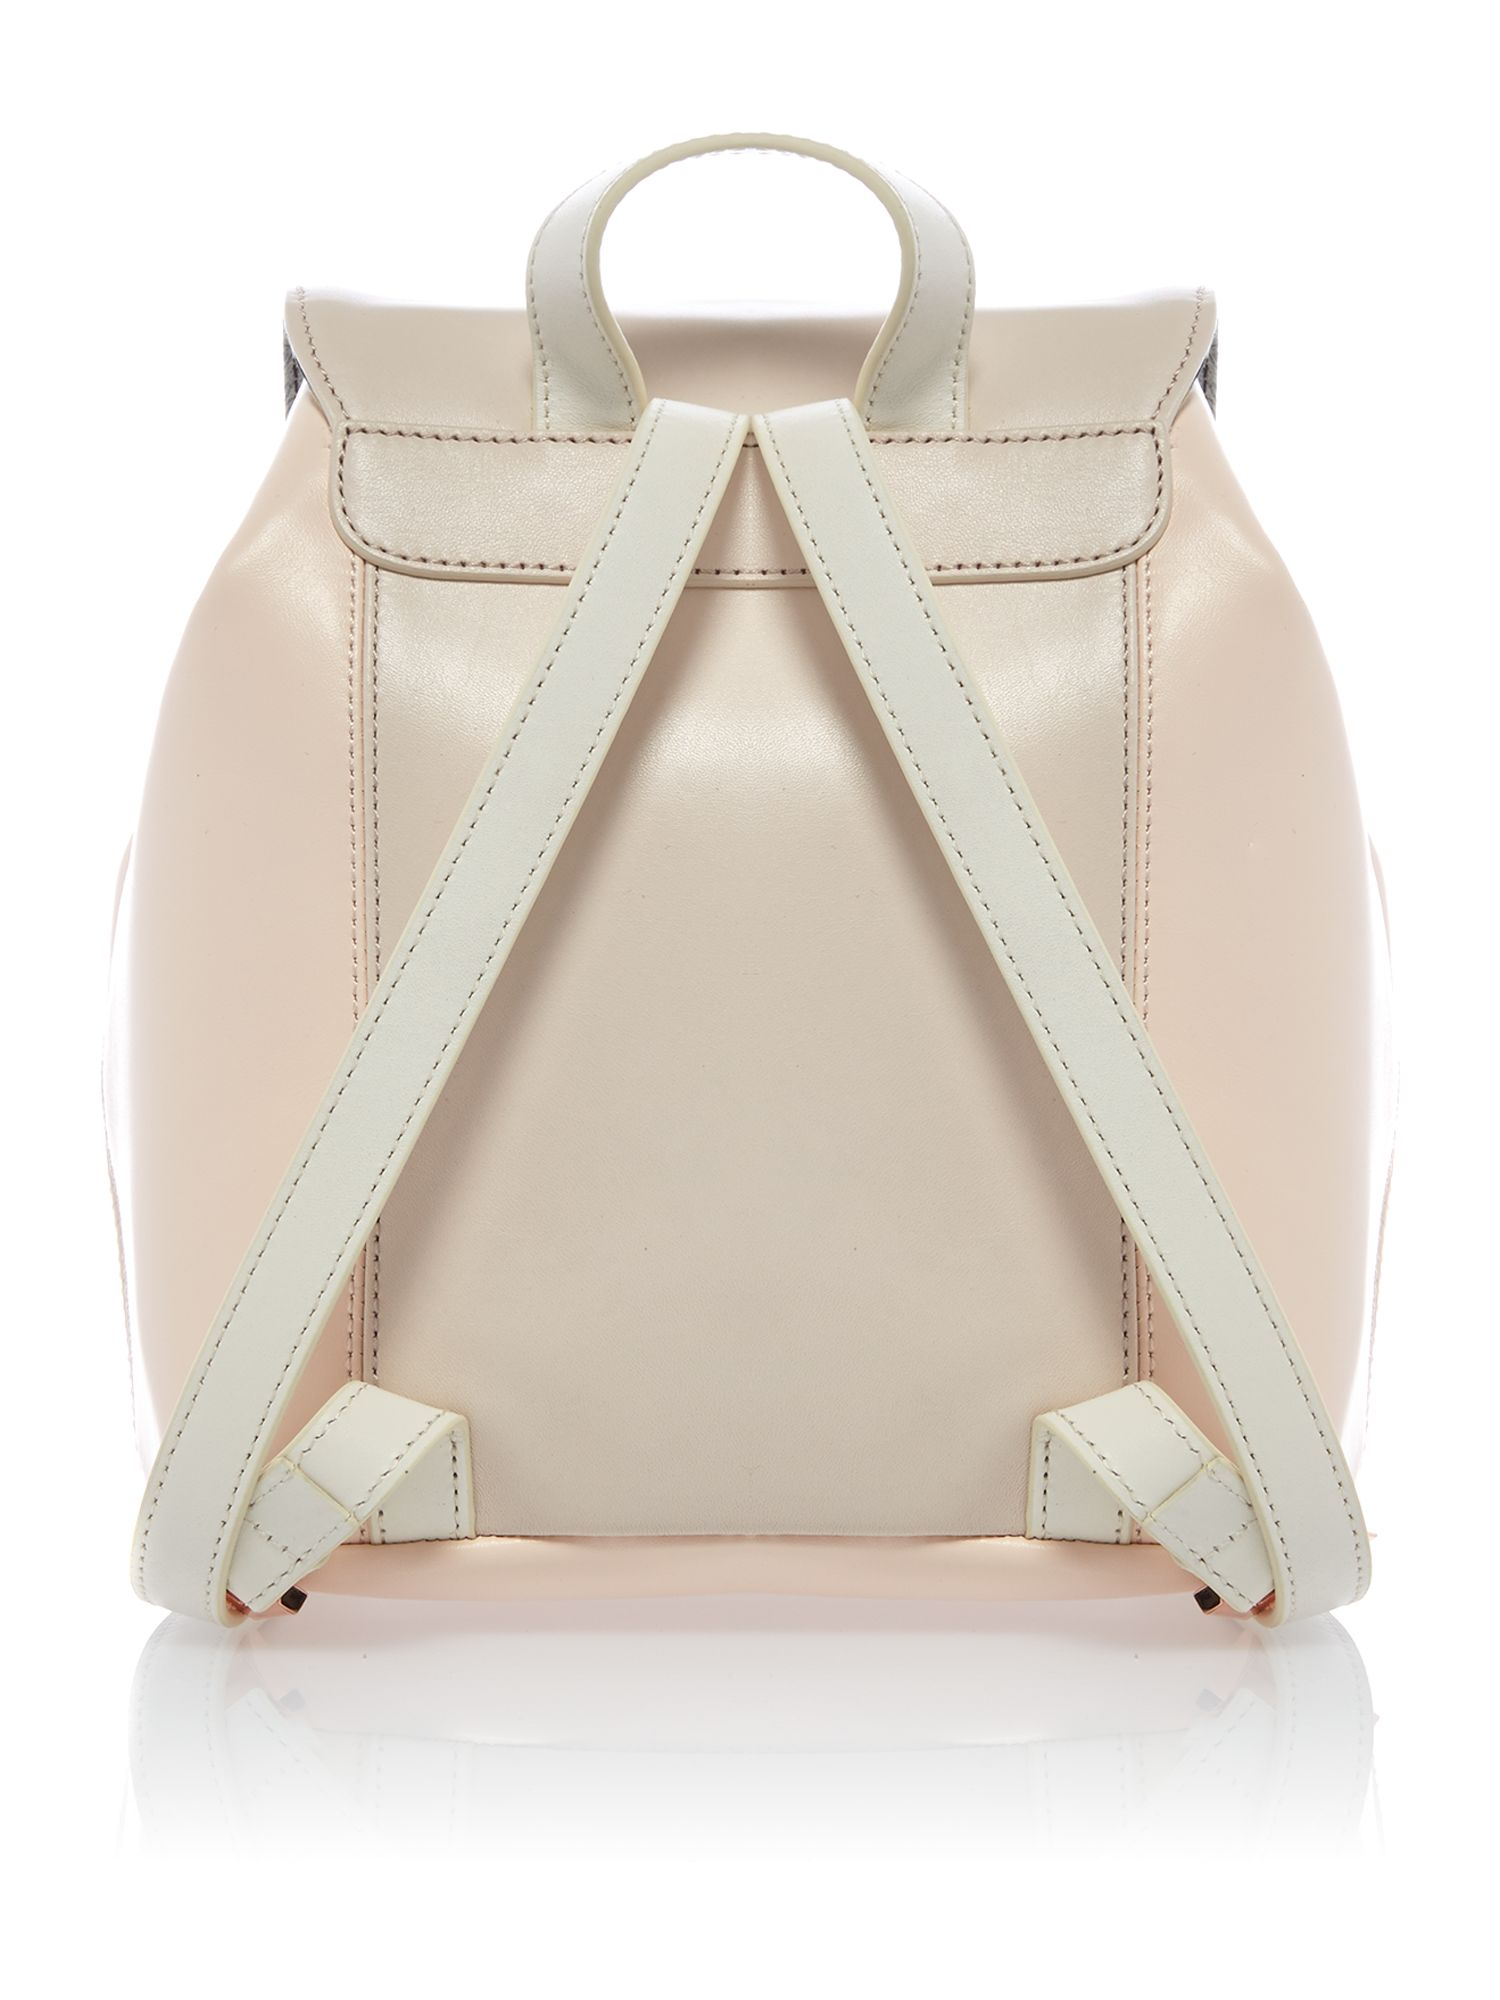 Small nude and cream backpack